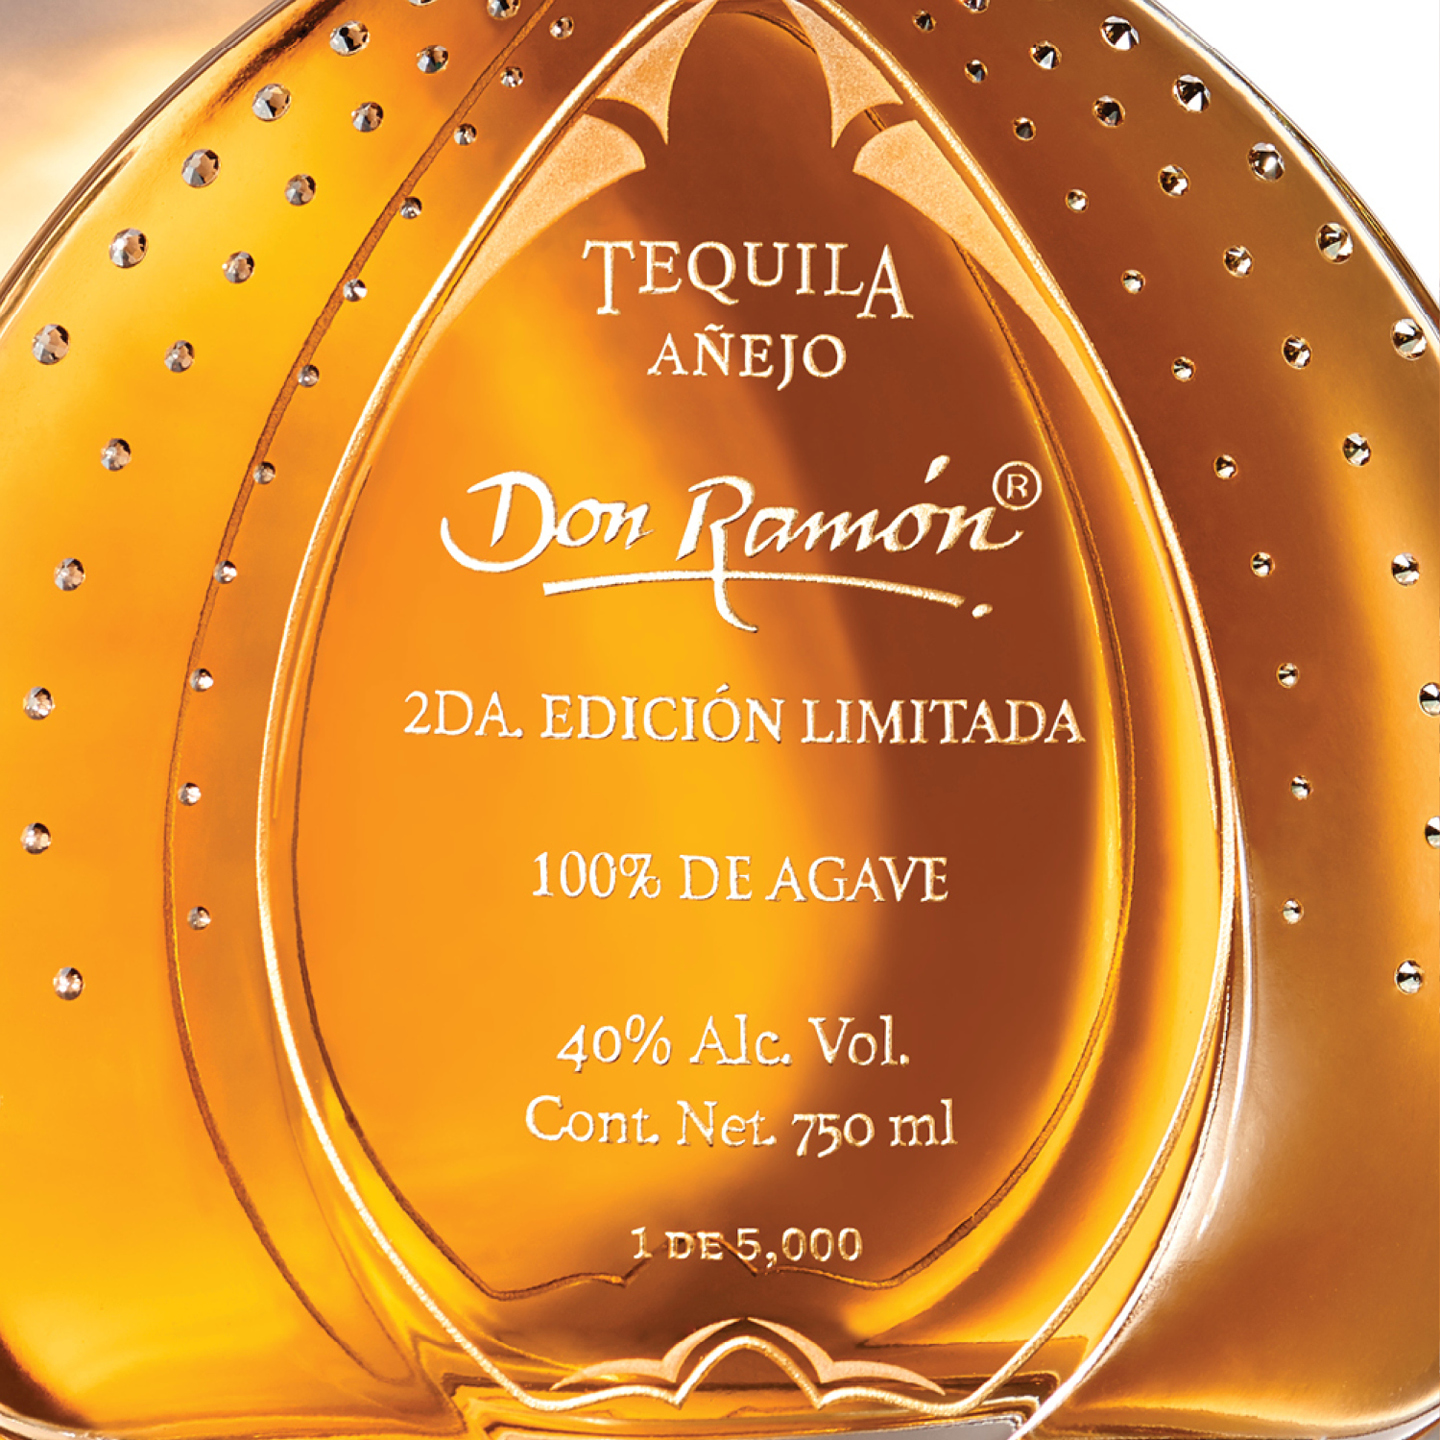 Tequila Don Ramón Limited Edition Añejo